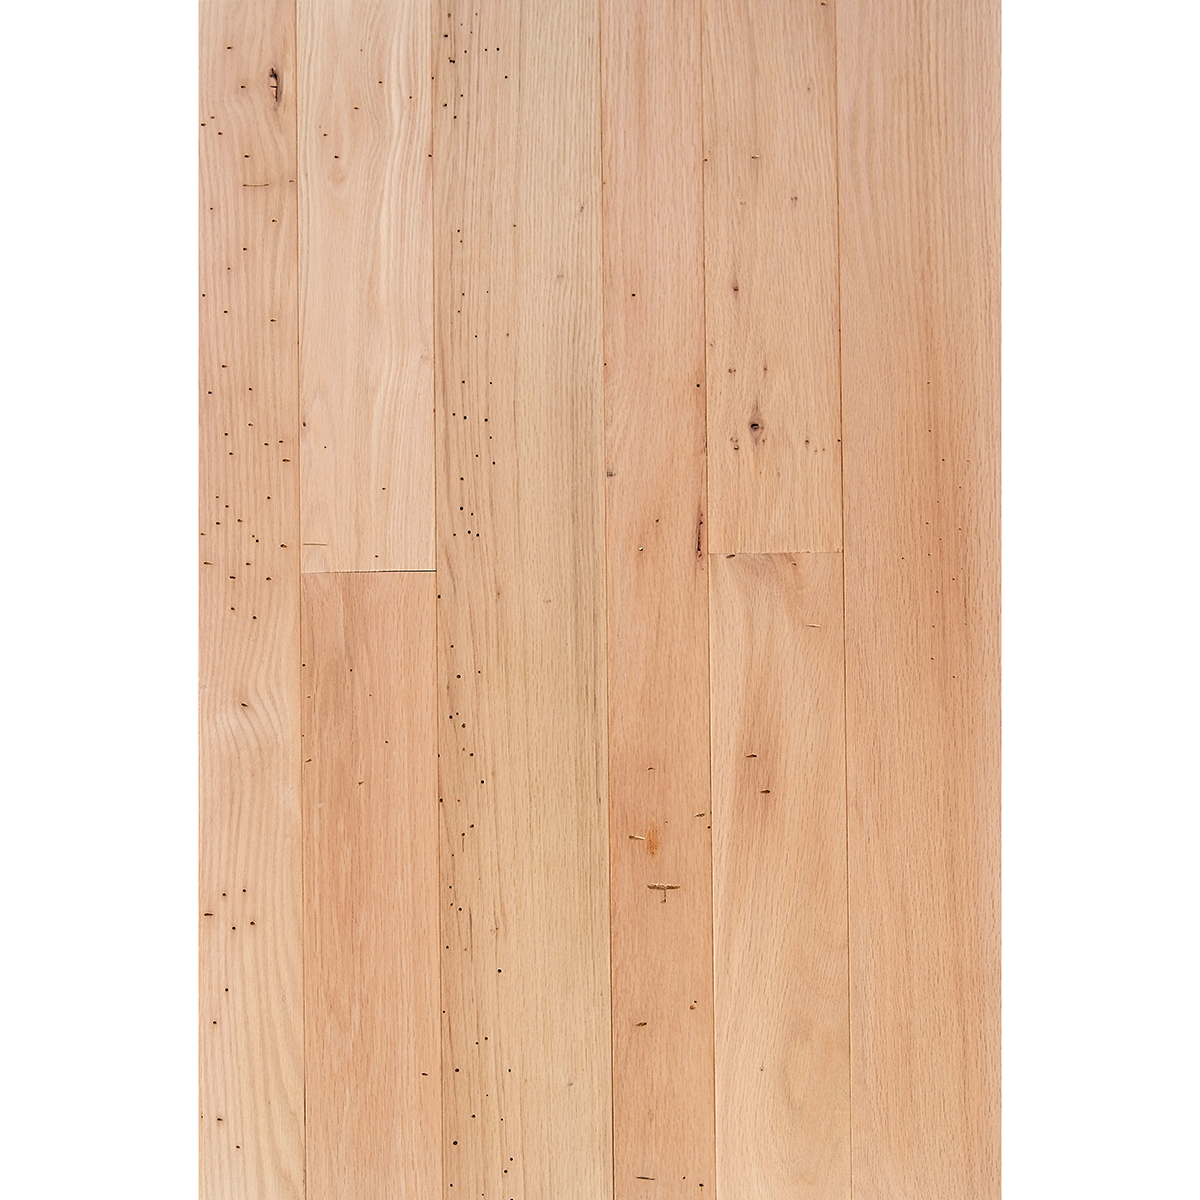 Red oak wormy rustic 3 4 x 3 4 5 flooring for Rustic red oak flooring